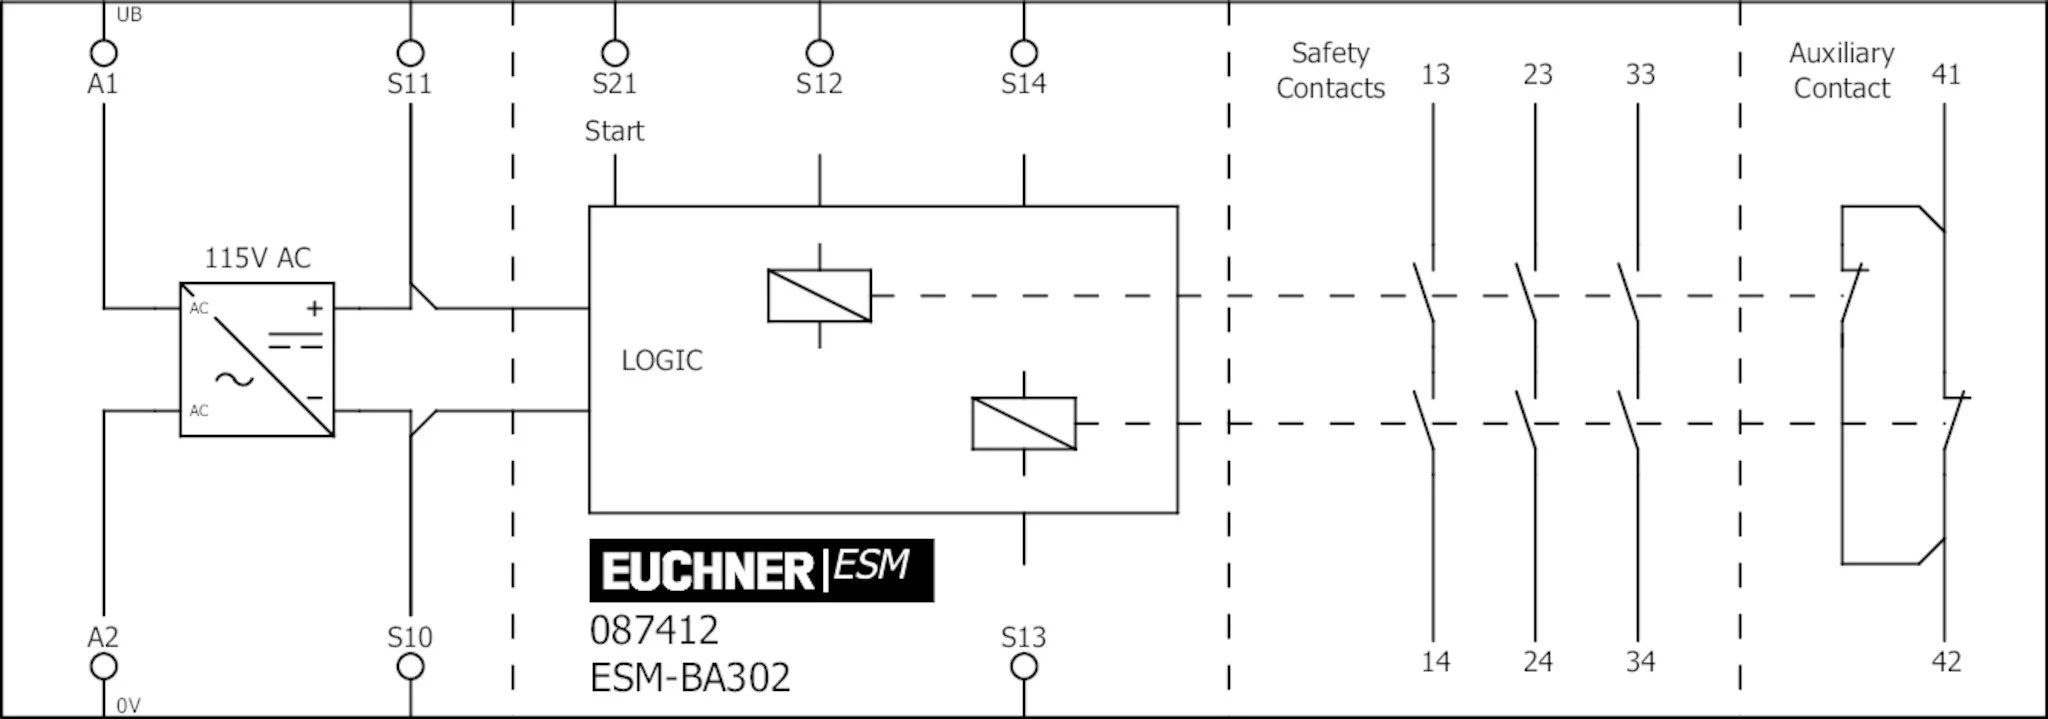 ESM-BA302 Basic device ESM-BA3.., 3 safety contacts, 1